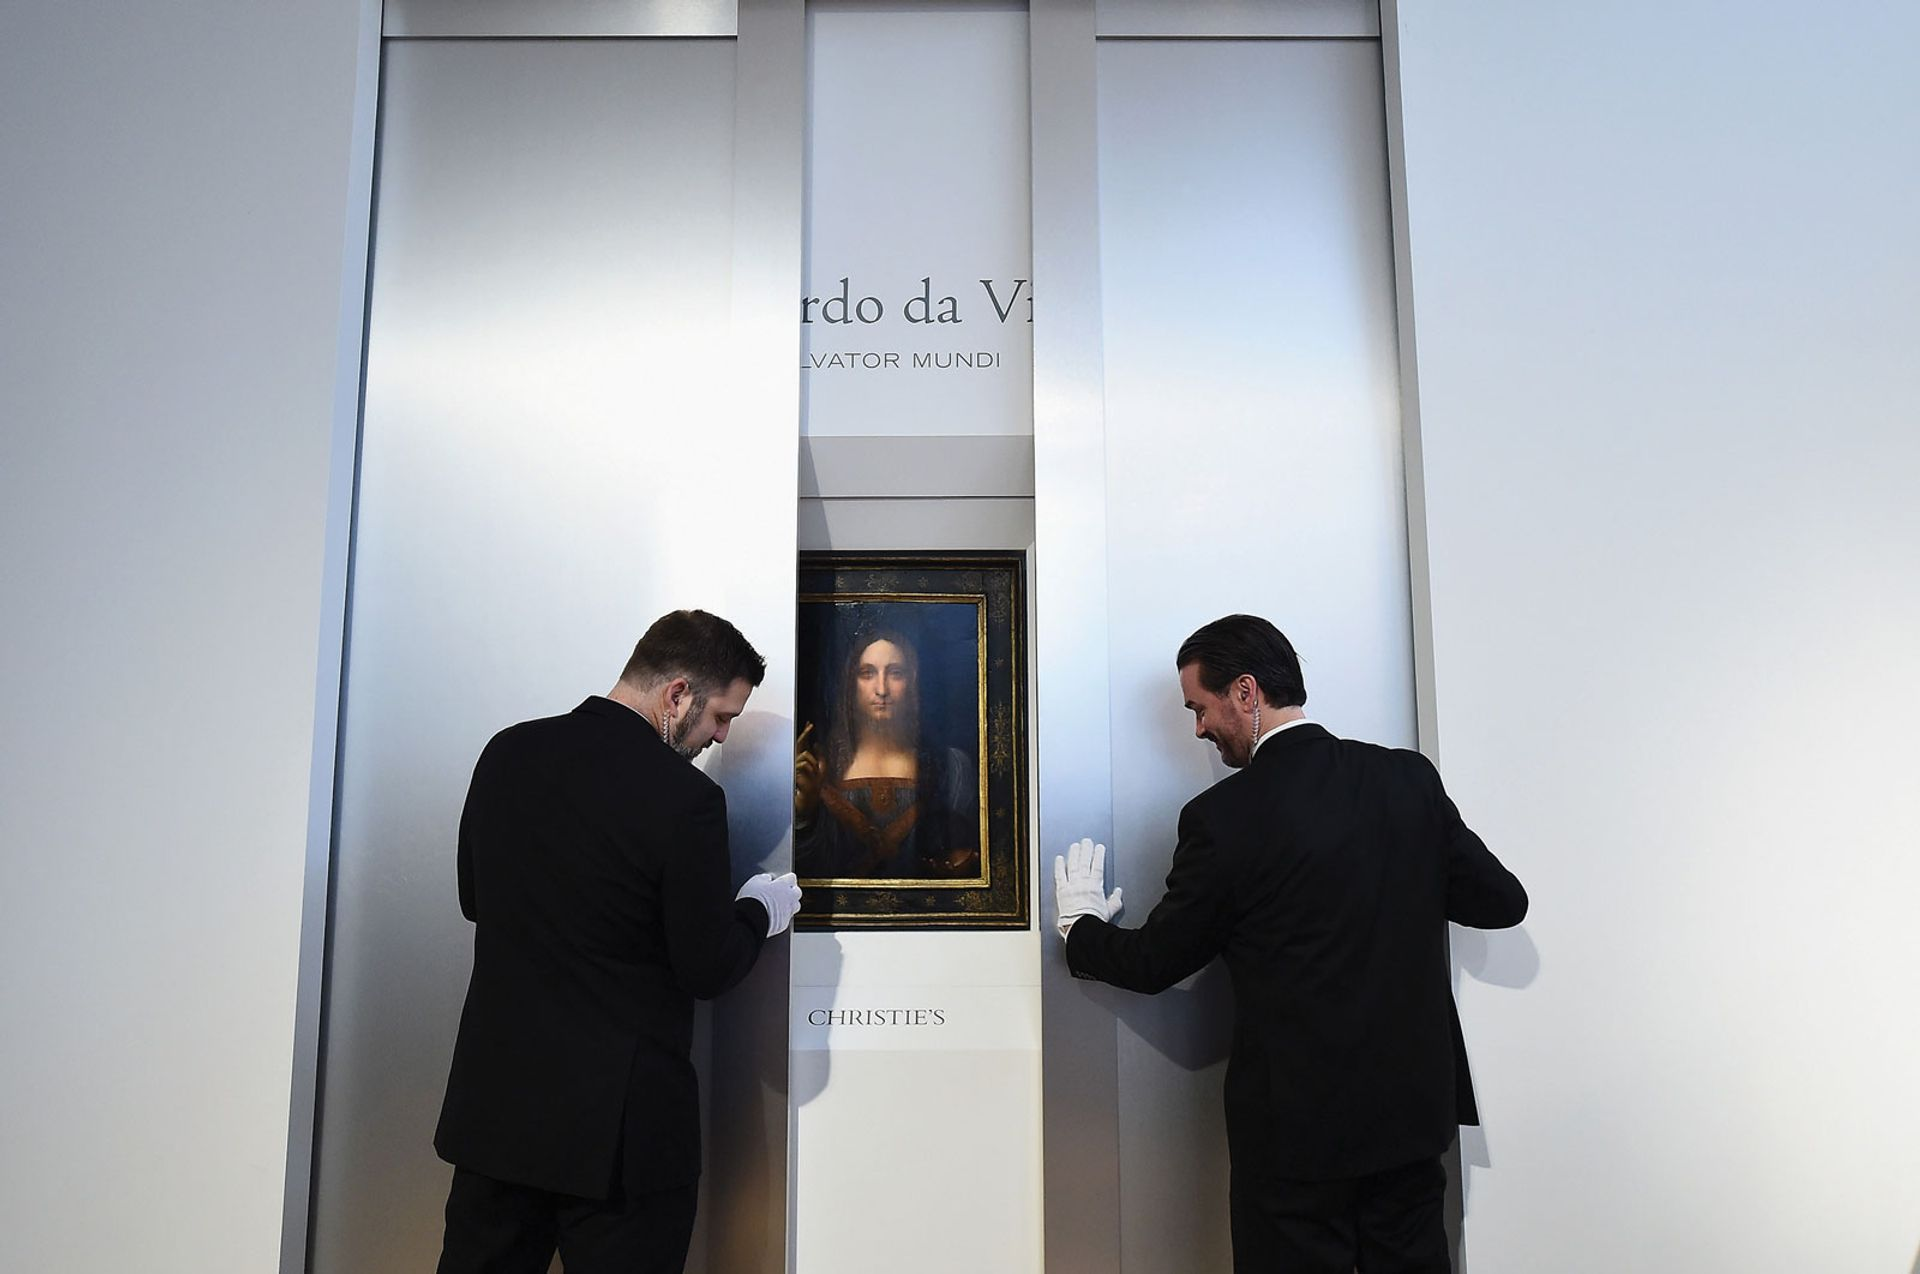 Leonardo's Salvator Mundi was sold to an anonymous bidder for $450m at Christie's New York on 15 November 2017 and has been lost to public view ever since Photo: Ilya S. Savenok/Getty Images for Christie's Auction House